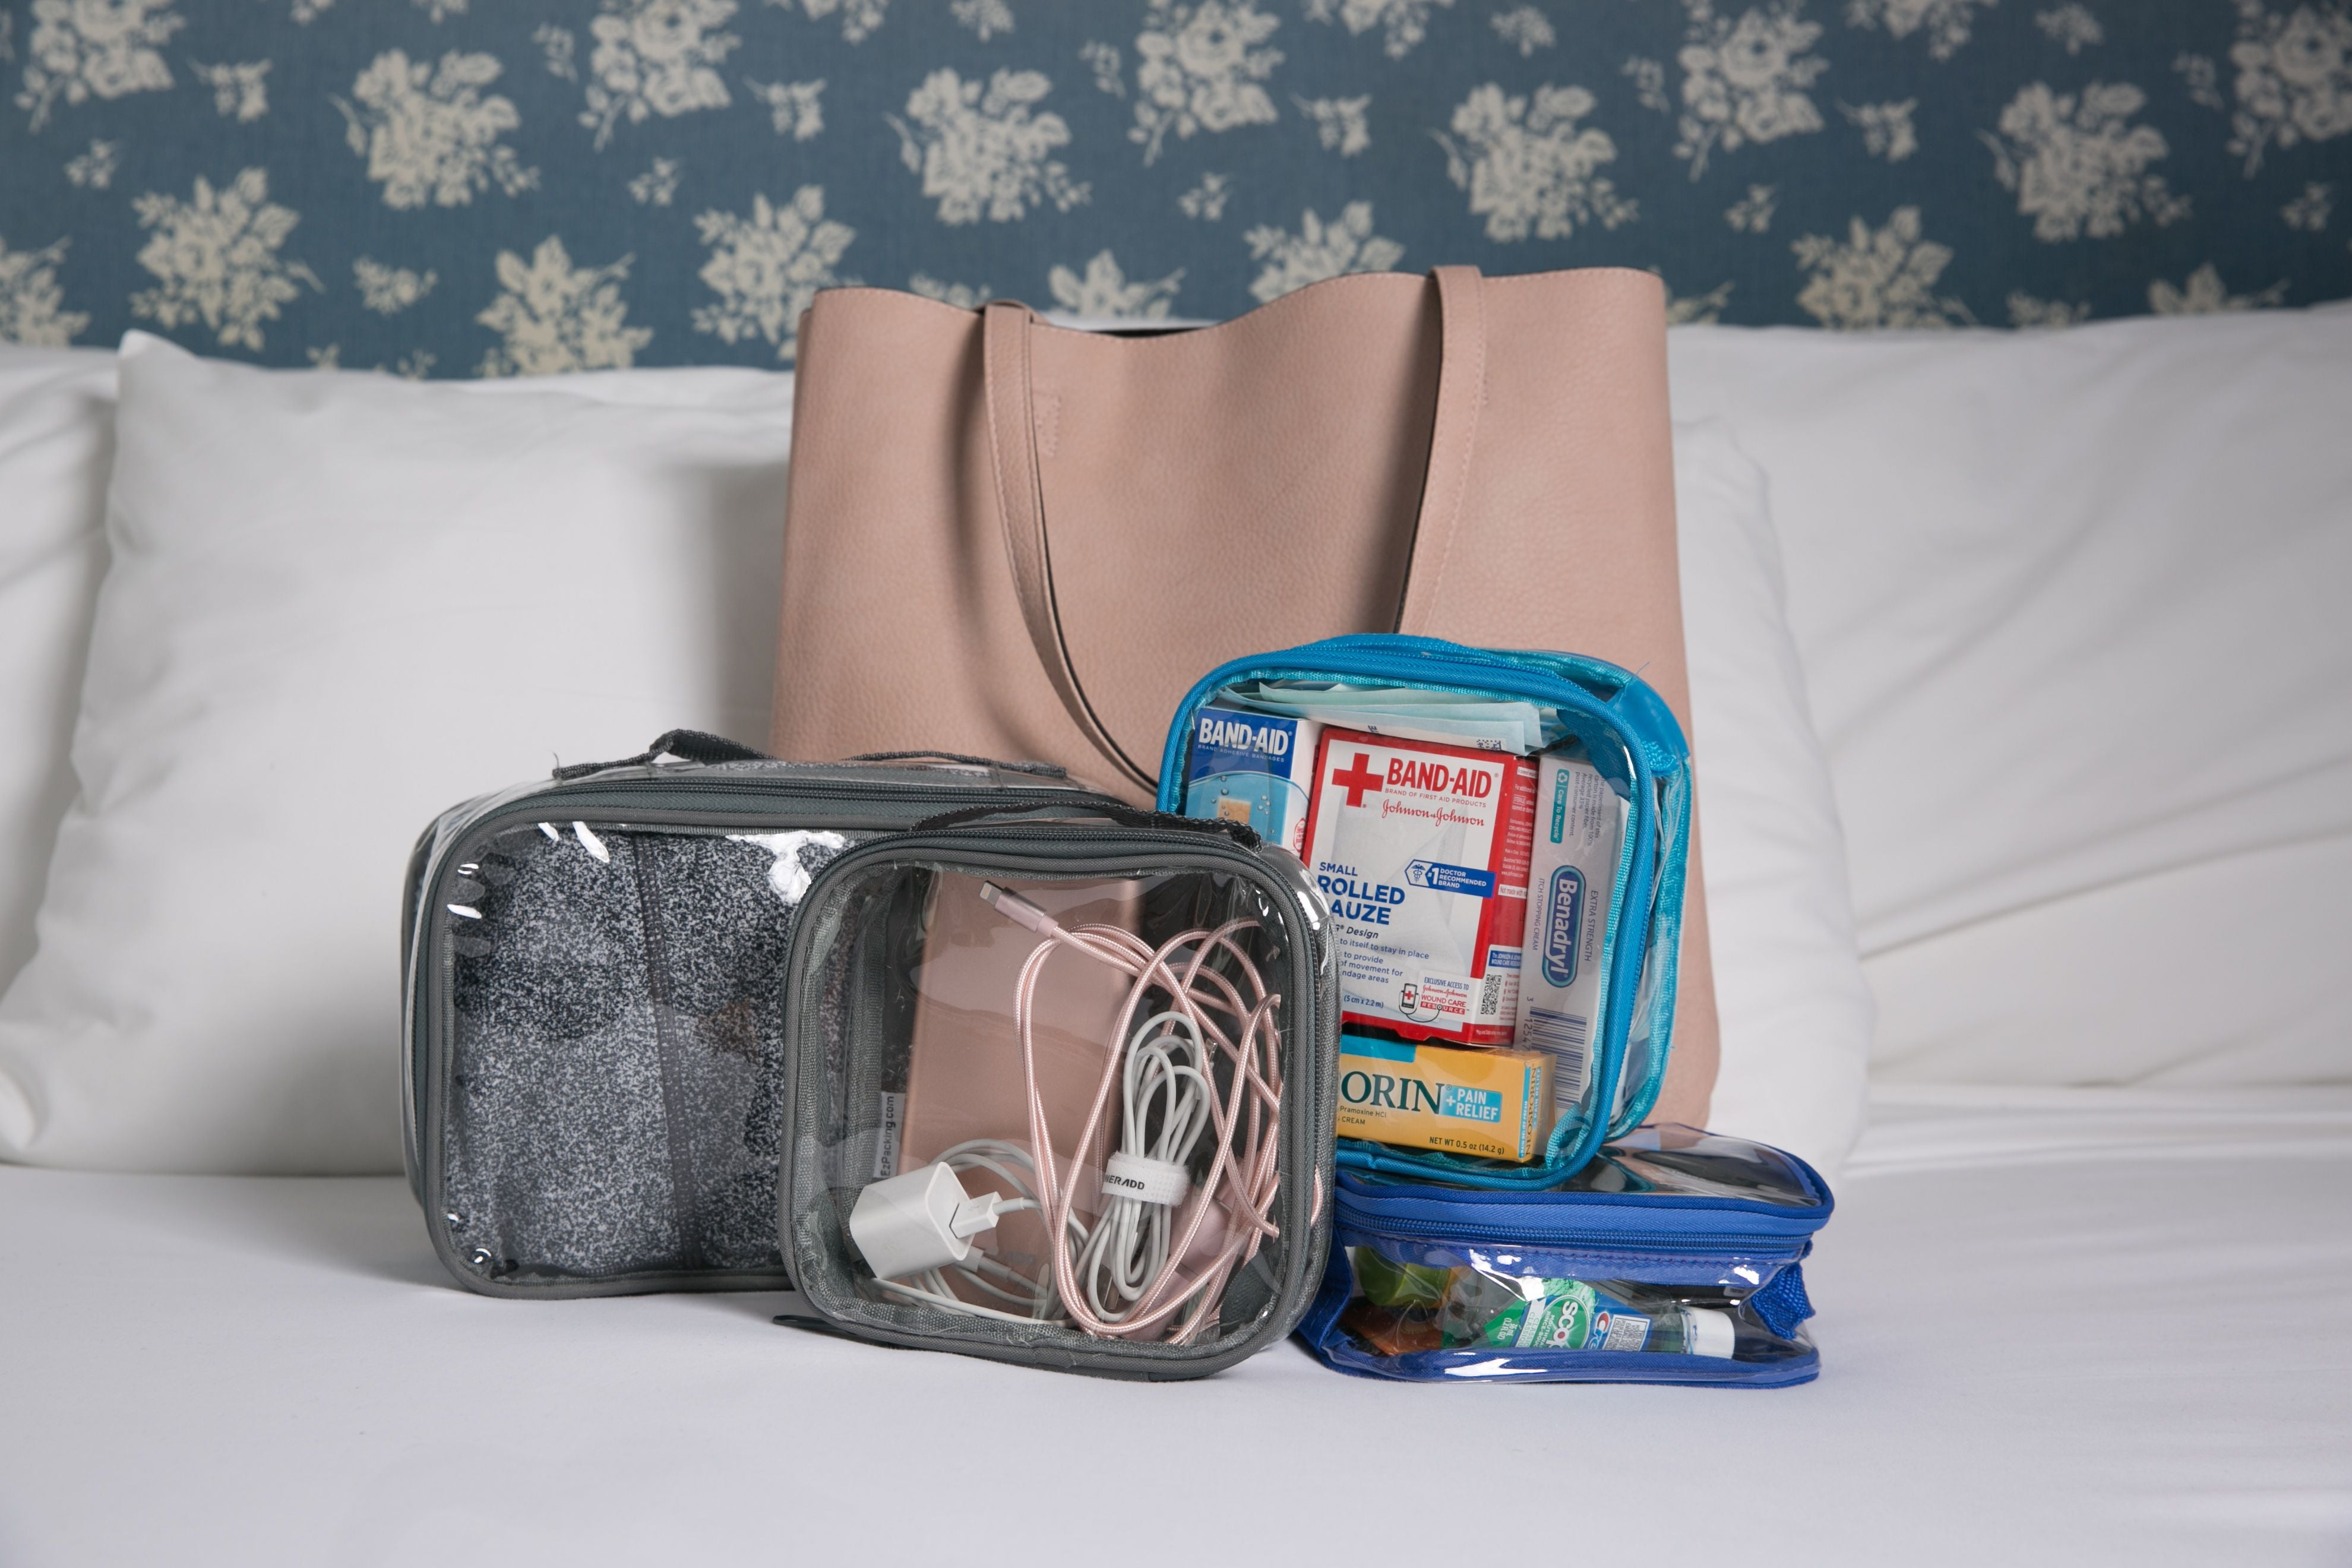 Clear packing cubes and a tote bag